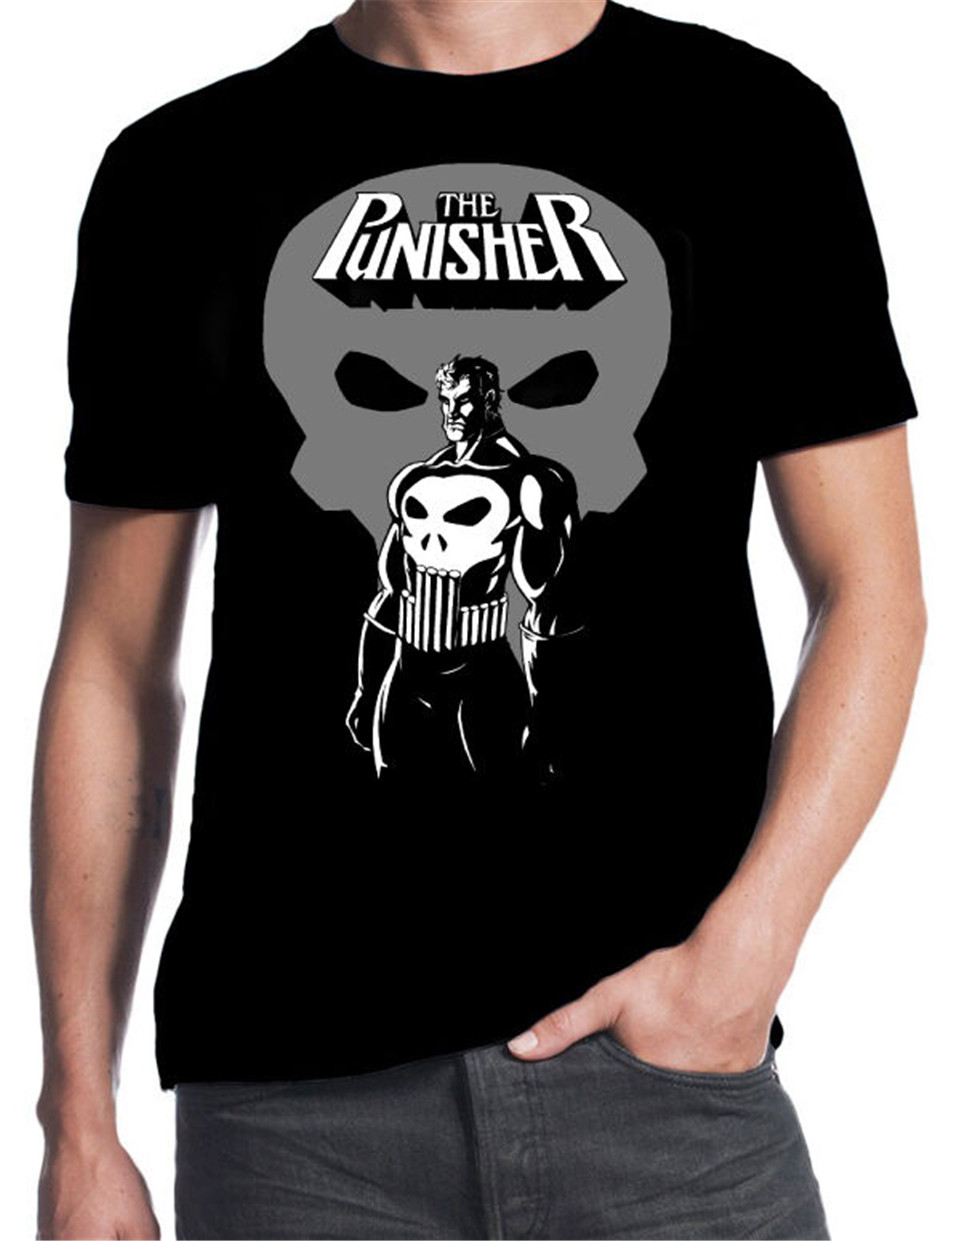 The Punisher Comic Book Skull Thomas Jane Action Movie Cartoon New Mens T-Shirt Tops New Unisex Funny Tee Shirt image